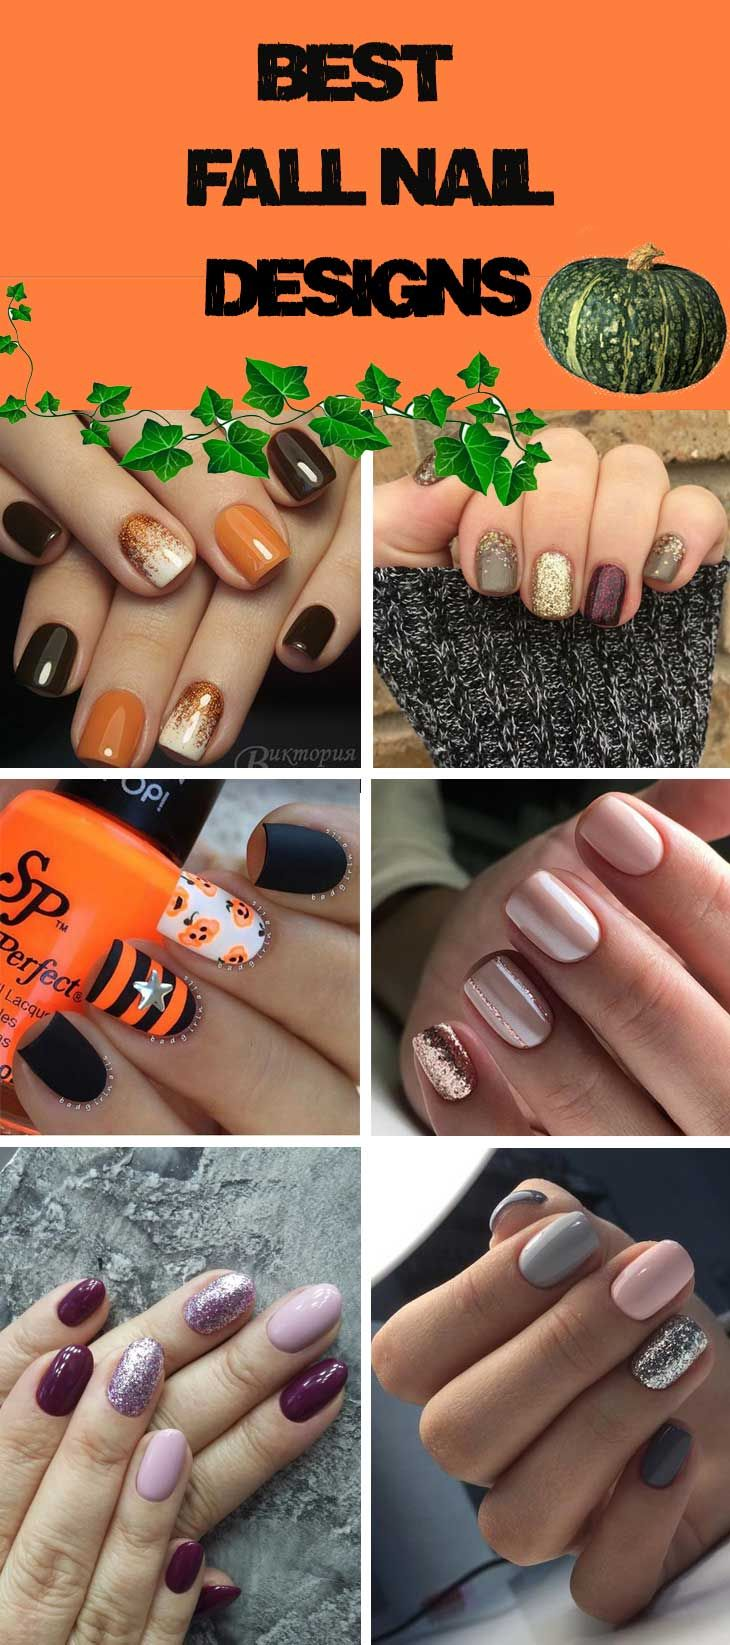 If you are searching for simple fall nail designs to bring a touch of autumn to…